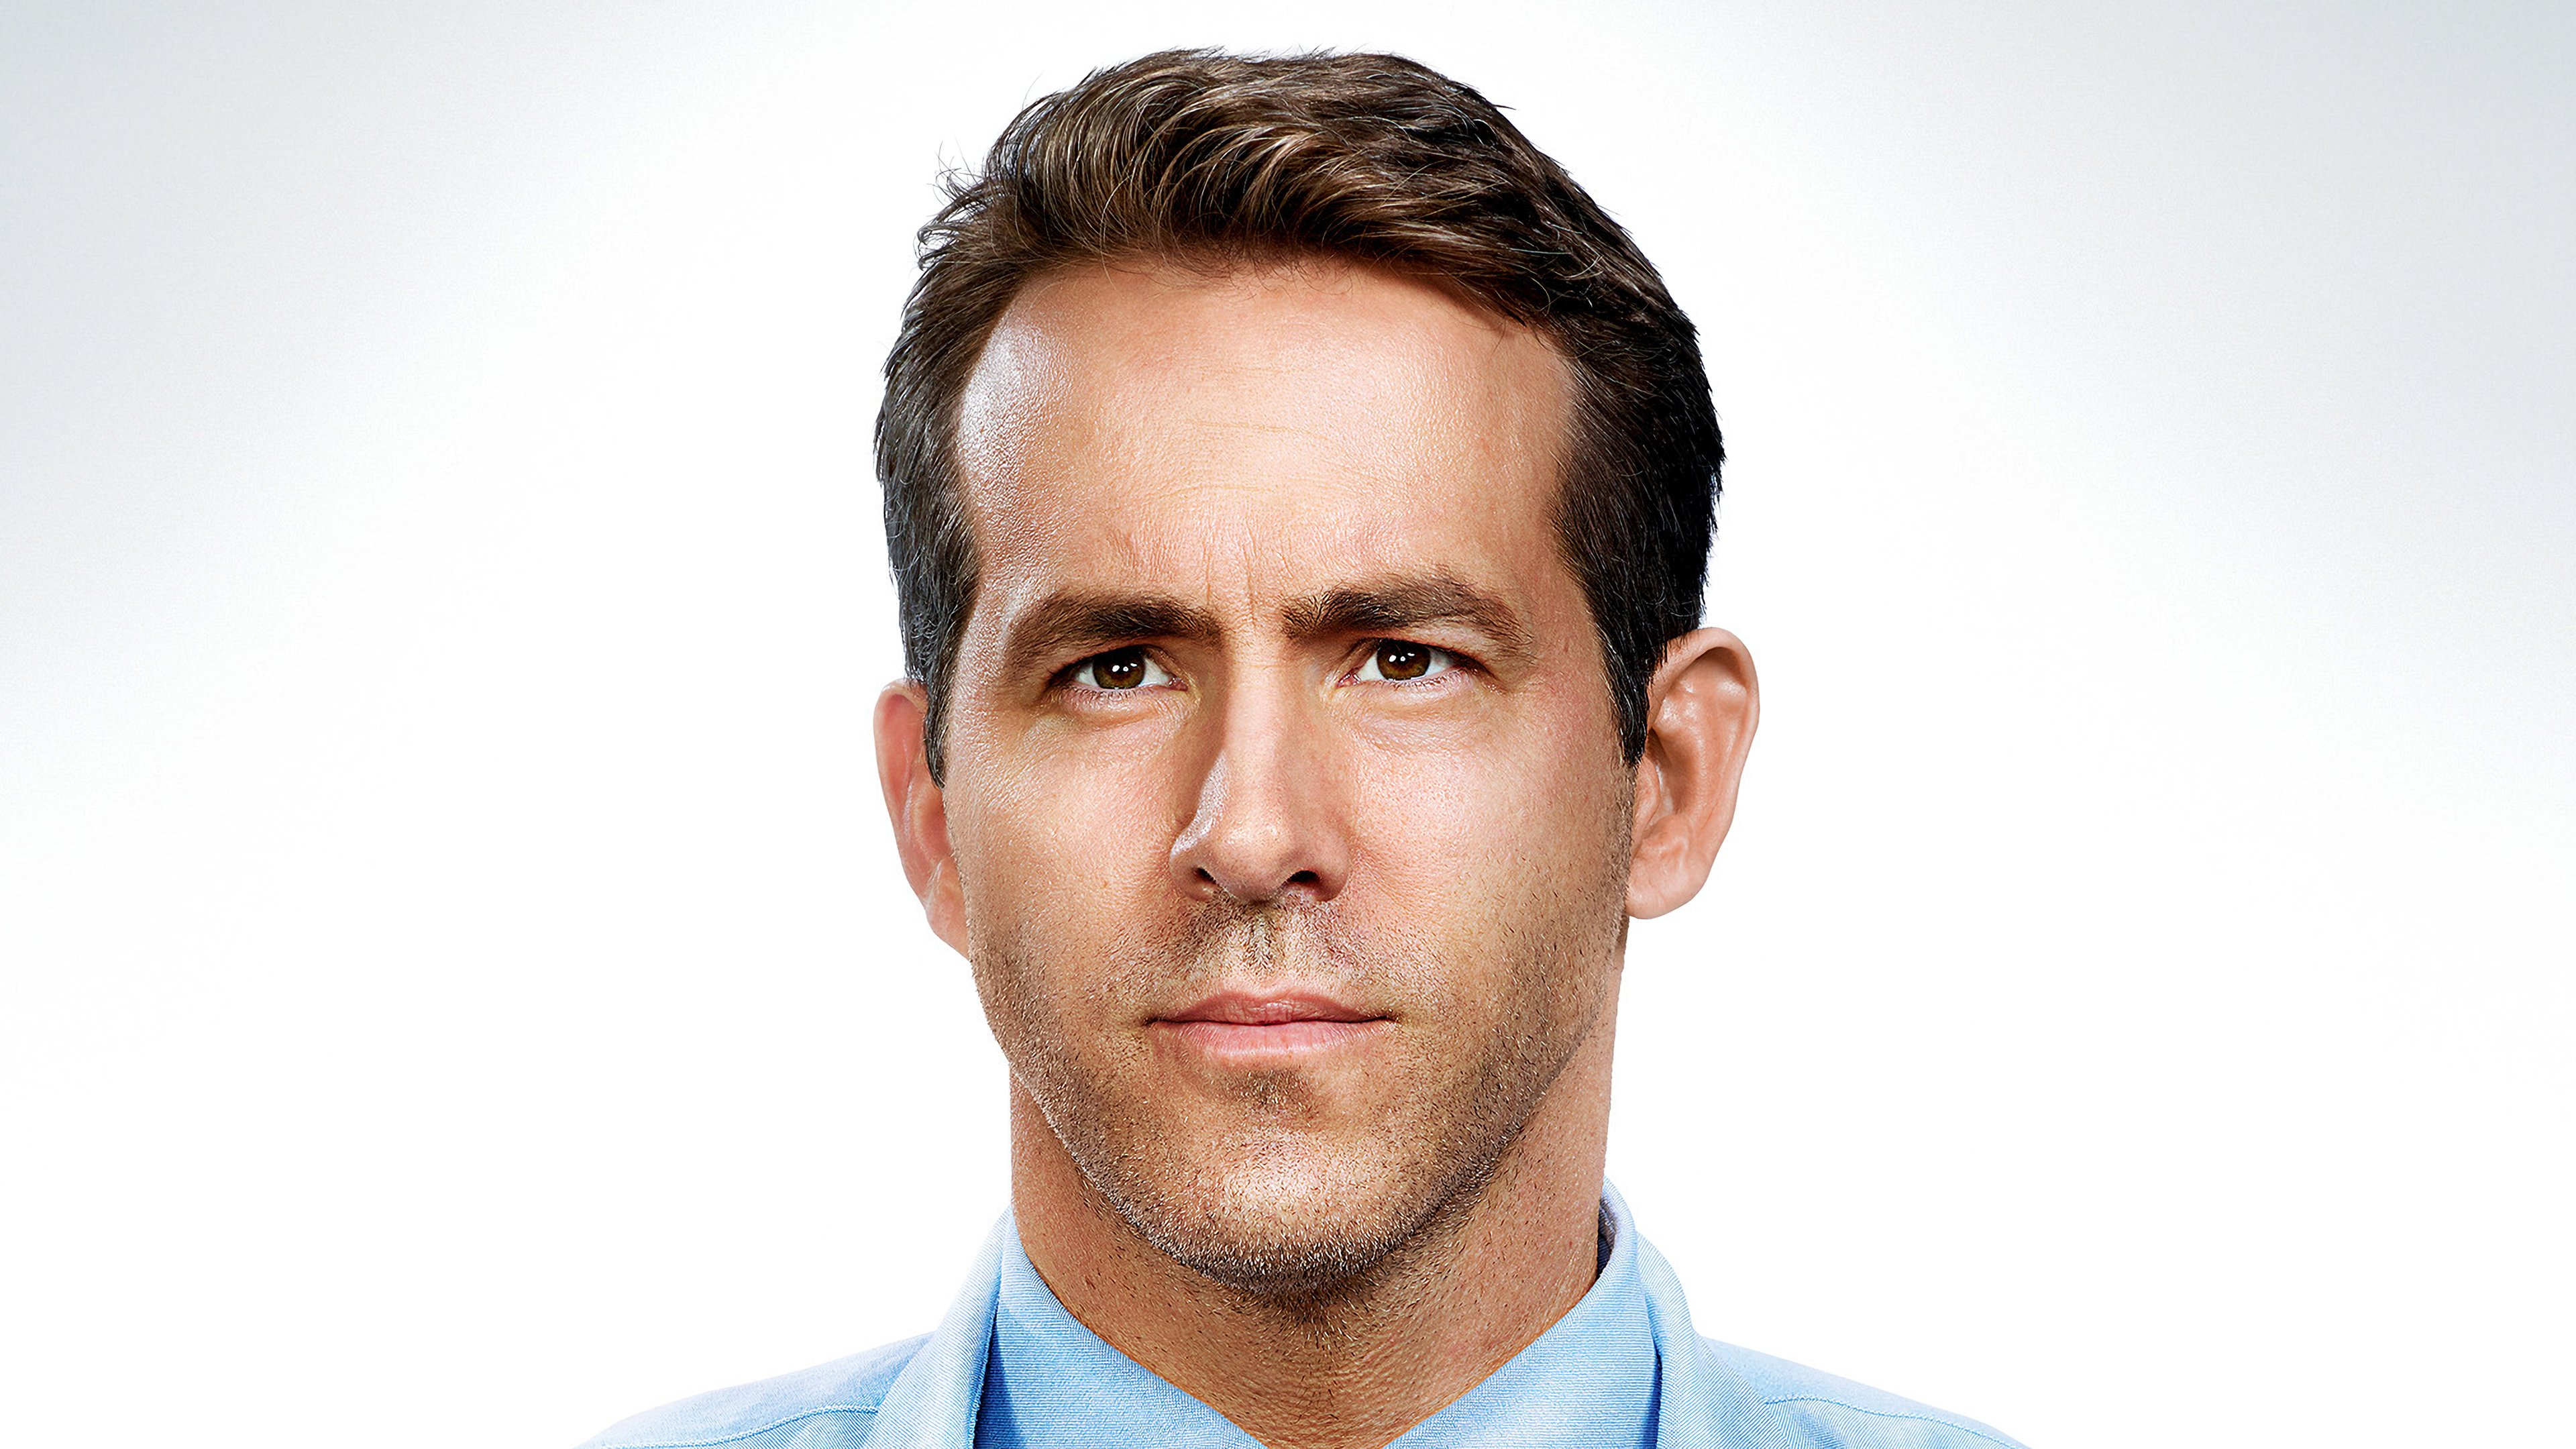 Guy Ryan Reynolds Movie Poster 4K Wallpaper 7622 3840x2160